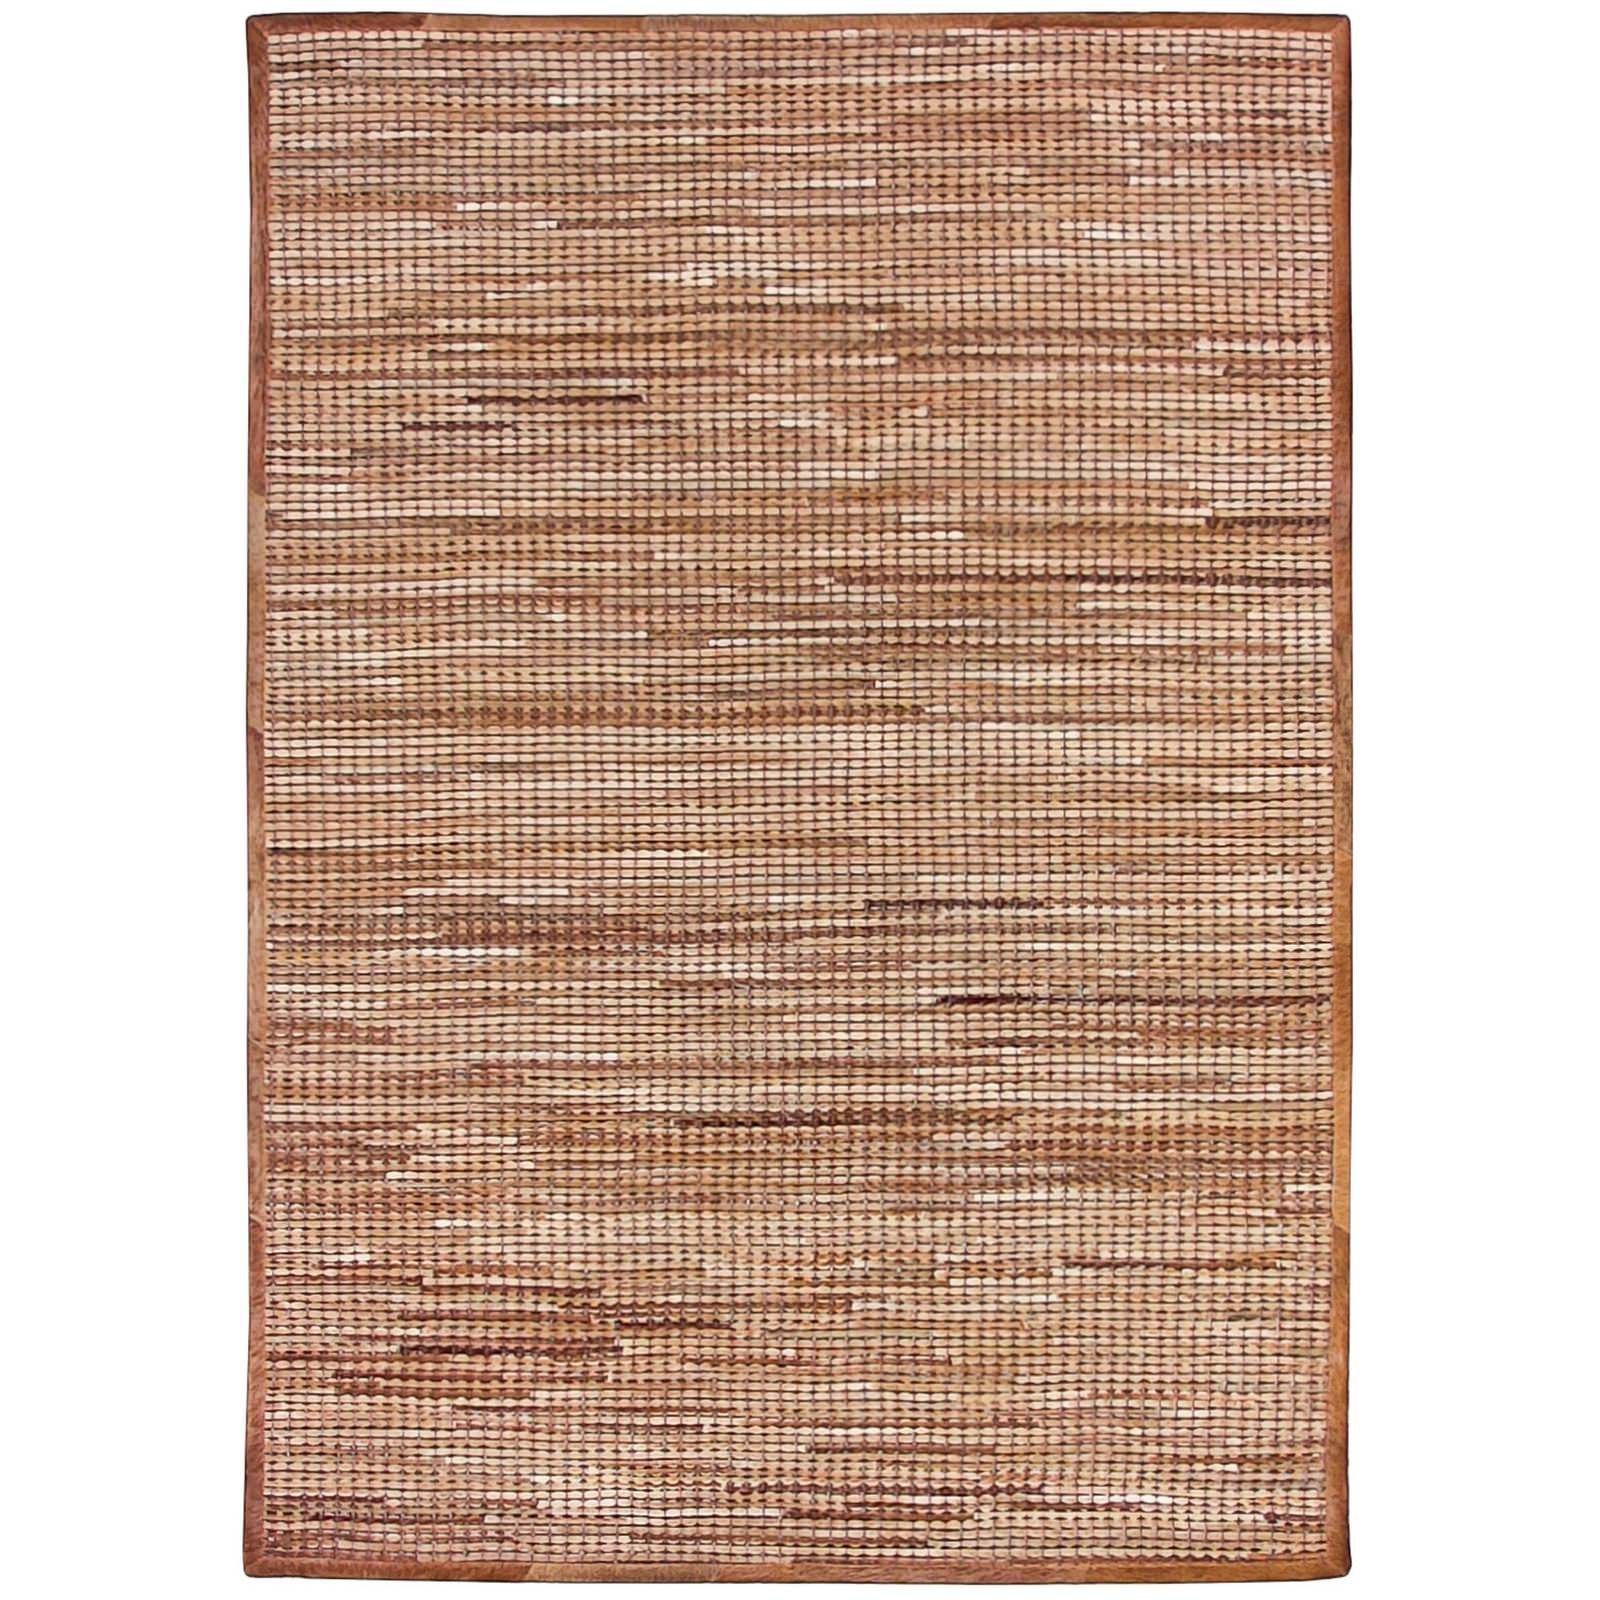 Chase Handwoven Hide & Leather Rug, 300x400cm, Caramel